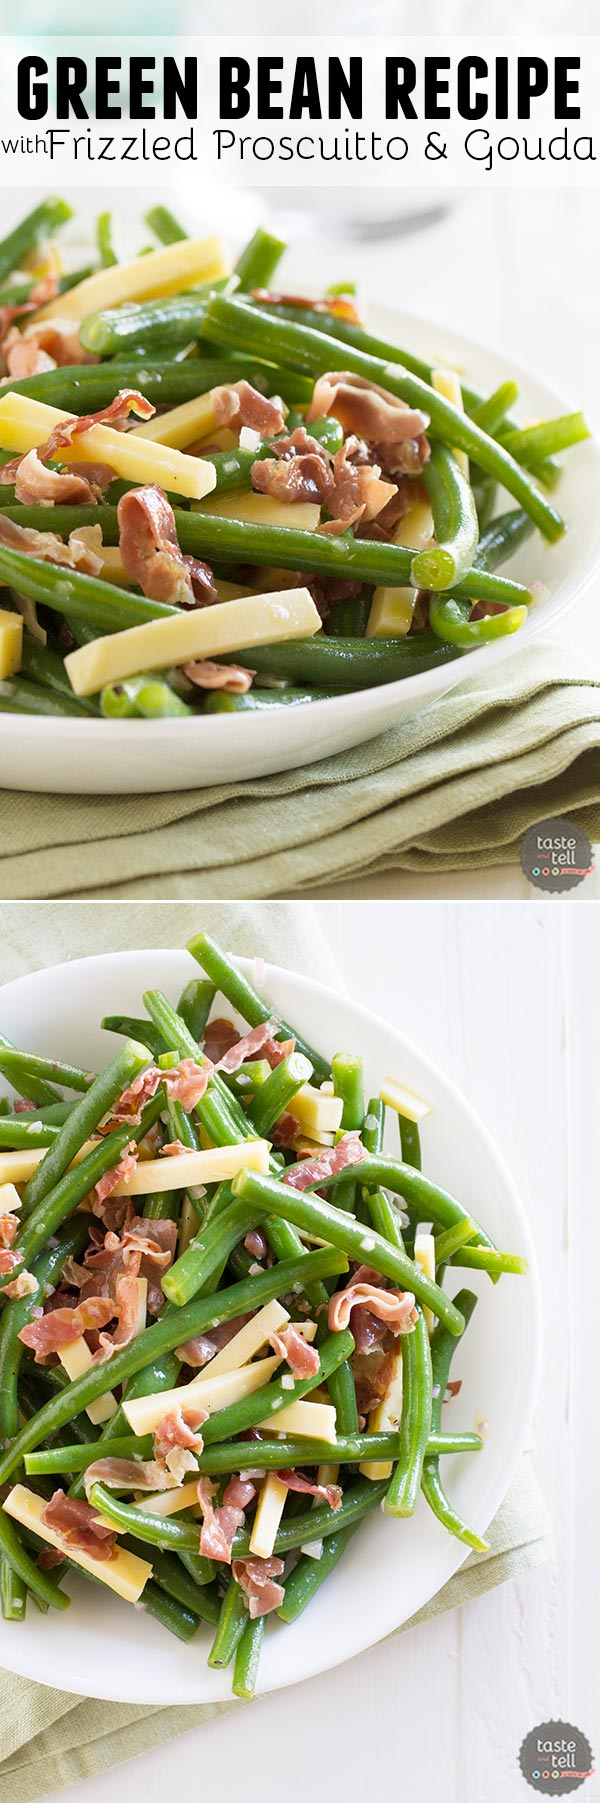 Jazz up your side dish with this Green Bean Recipe with Frizzled Prosciutto and Gouda. It is quick and delicious and a little different from the norm.